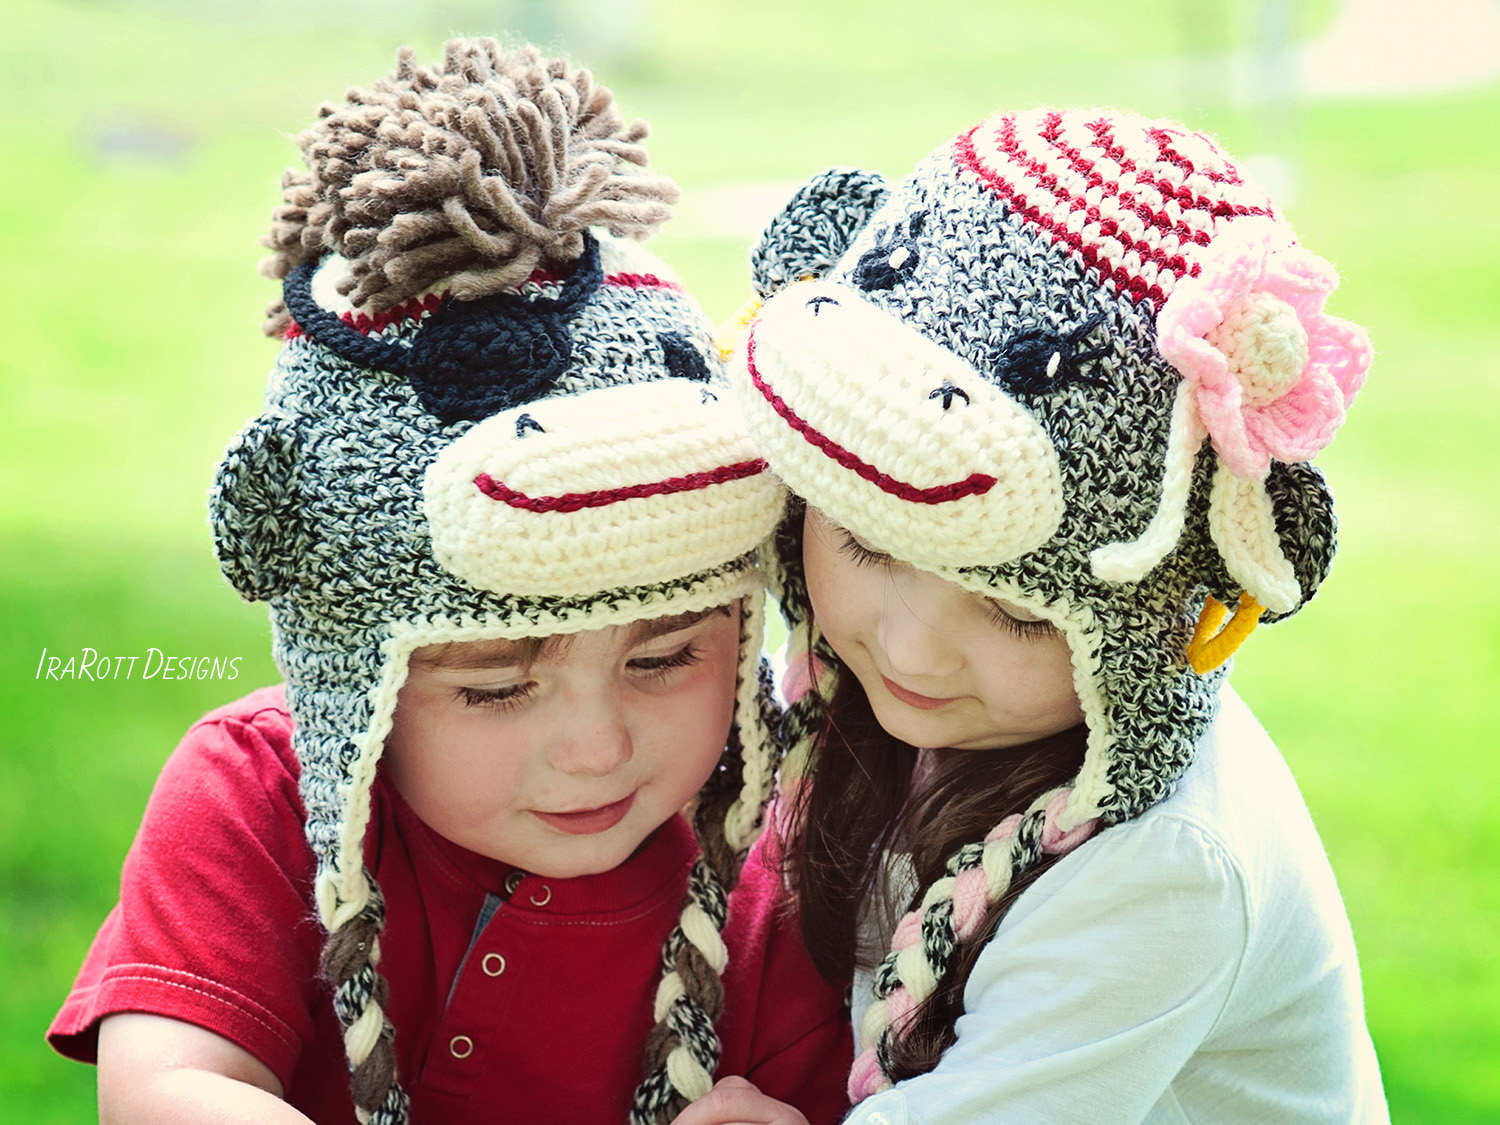 Pirate jim and molli sock monkey hat pdf crochet pattern irarott inc pirate sock monkey animal hat crochet pattern for boys or girls by irarott dt1010fo